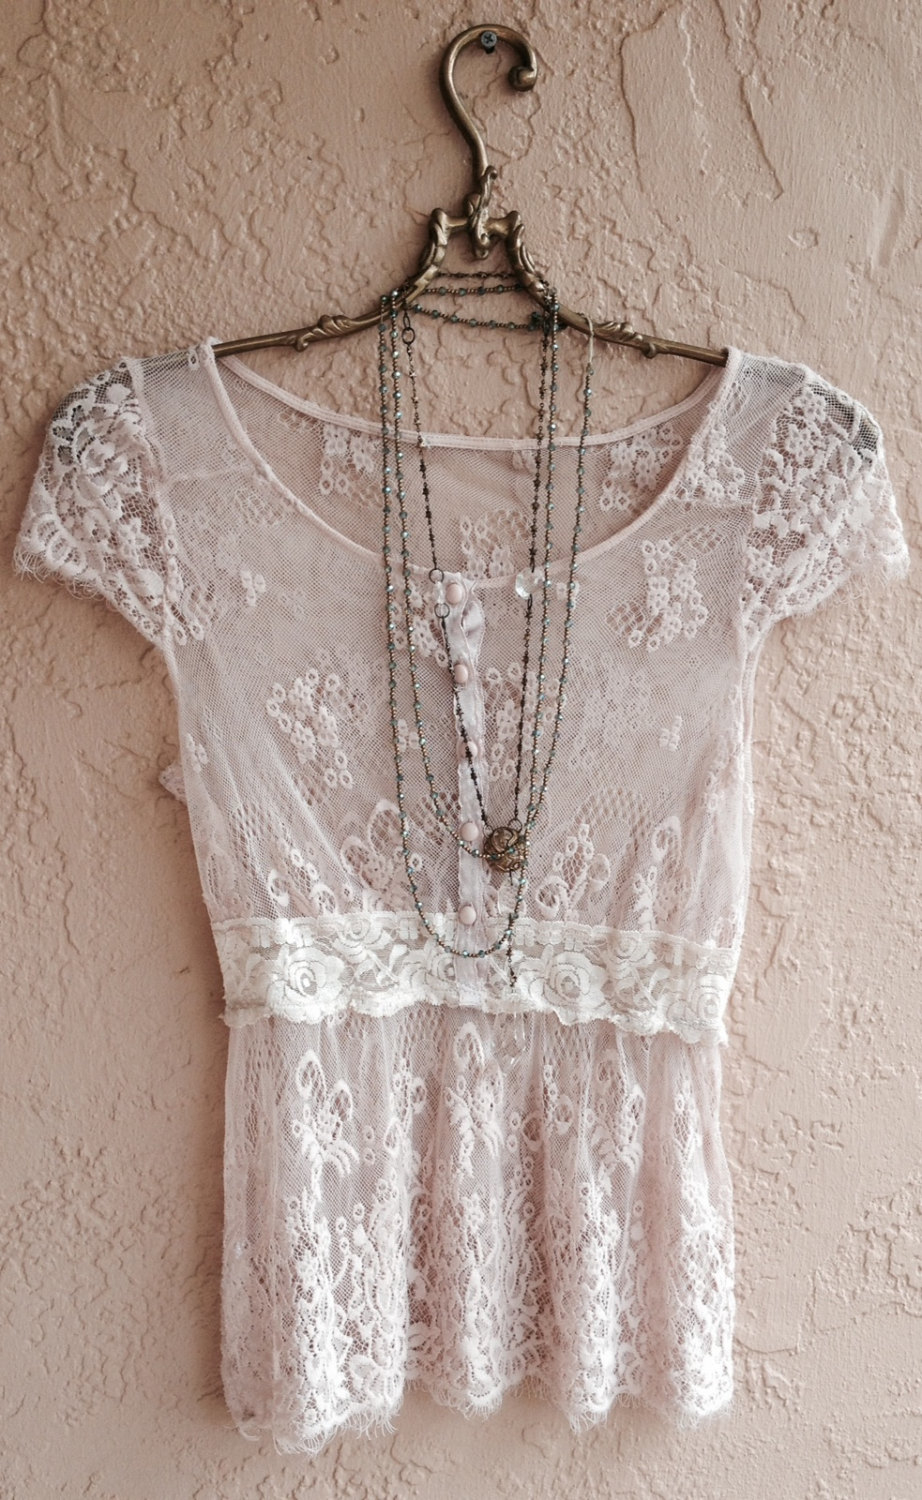 boho gypsy sheer lace top pictures photos and images for